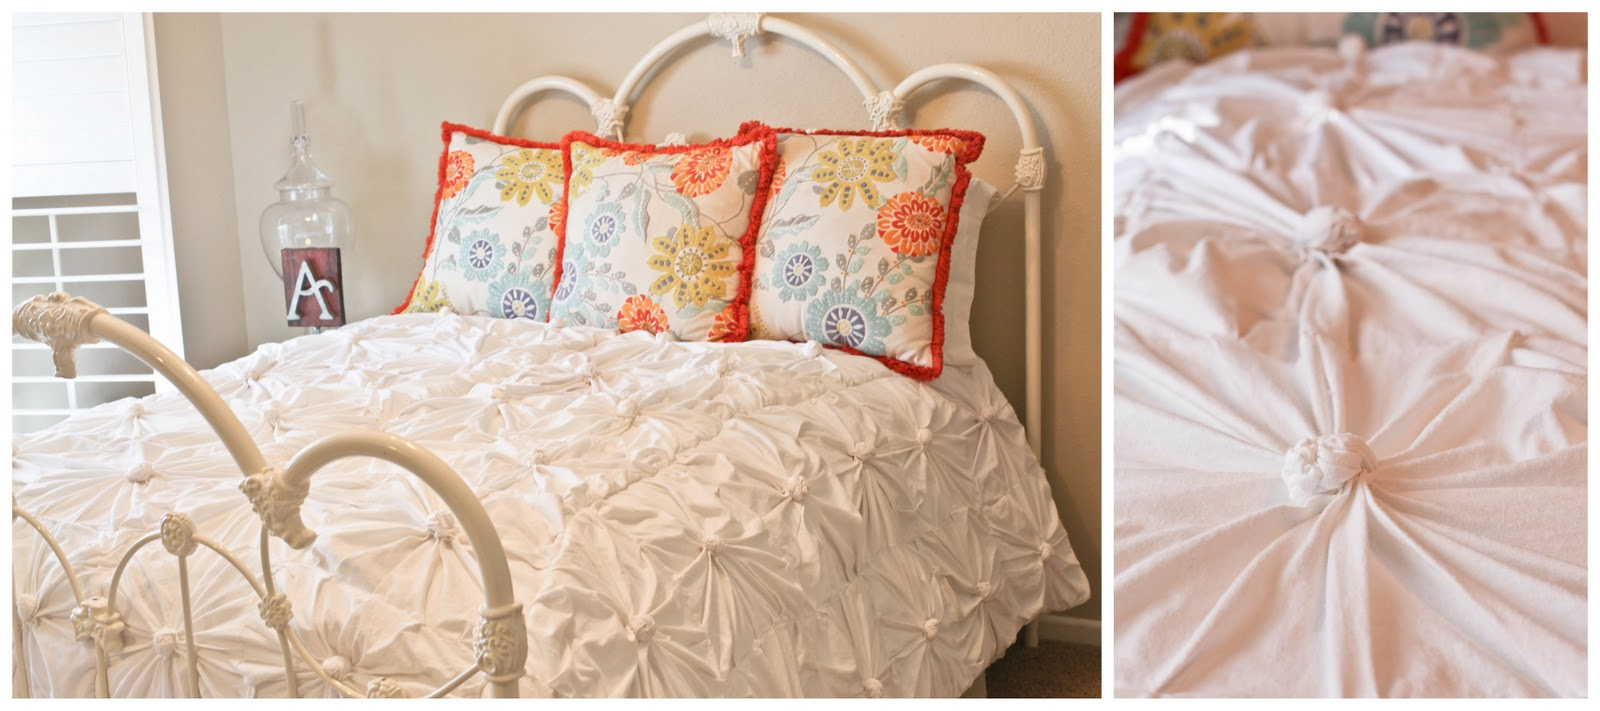 Anthropologie Inspired Knotted Bedding Part 2 Putting It All Together